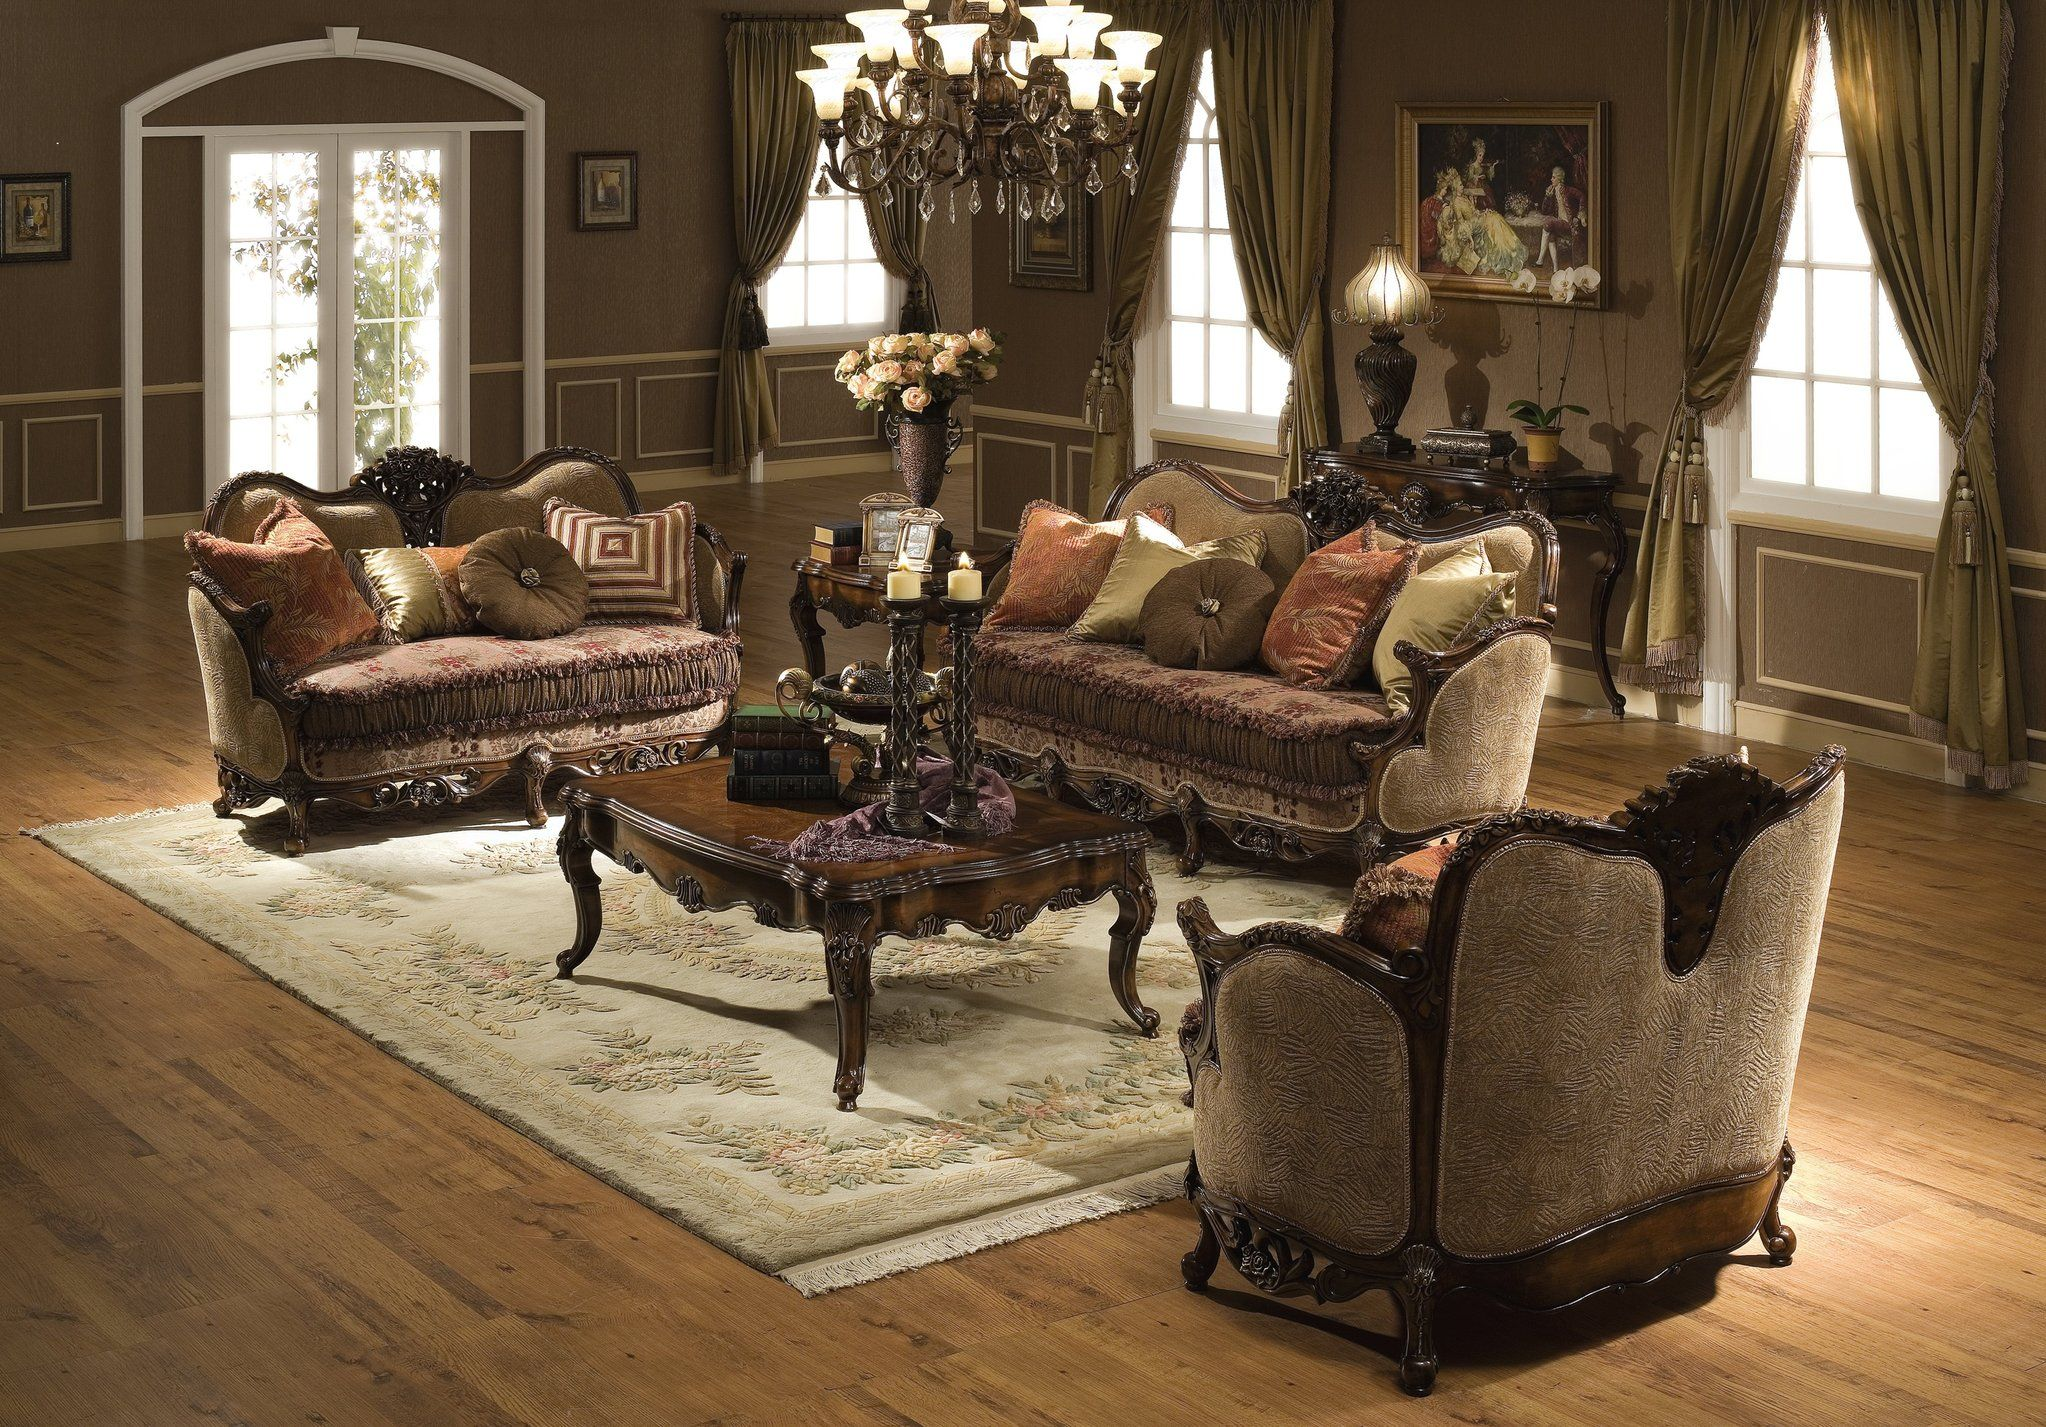 10 Inviting Wooden Living Room Furniture Sets Decor Art Living